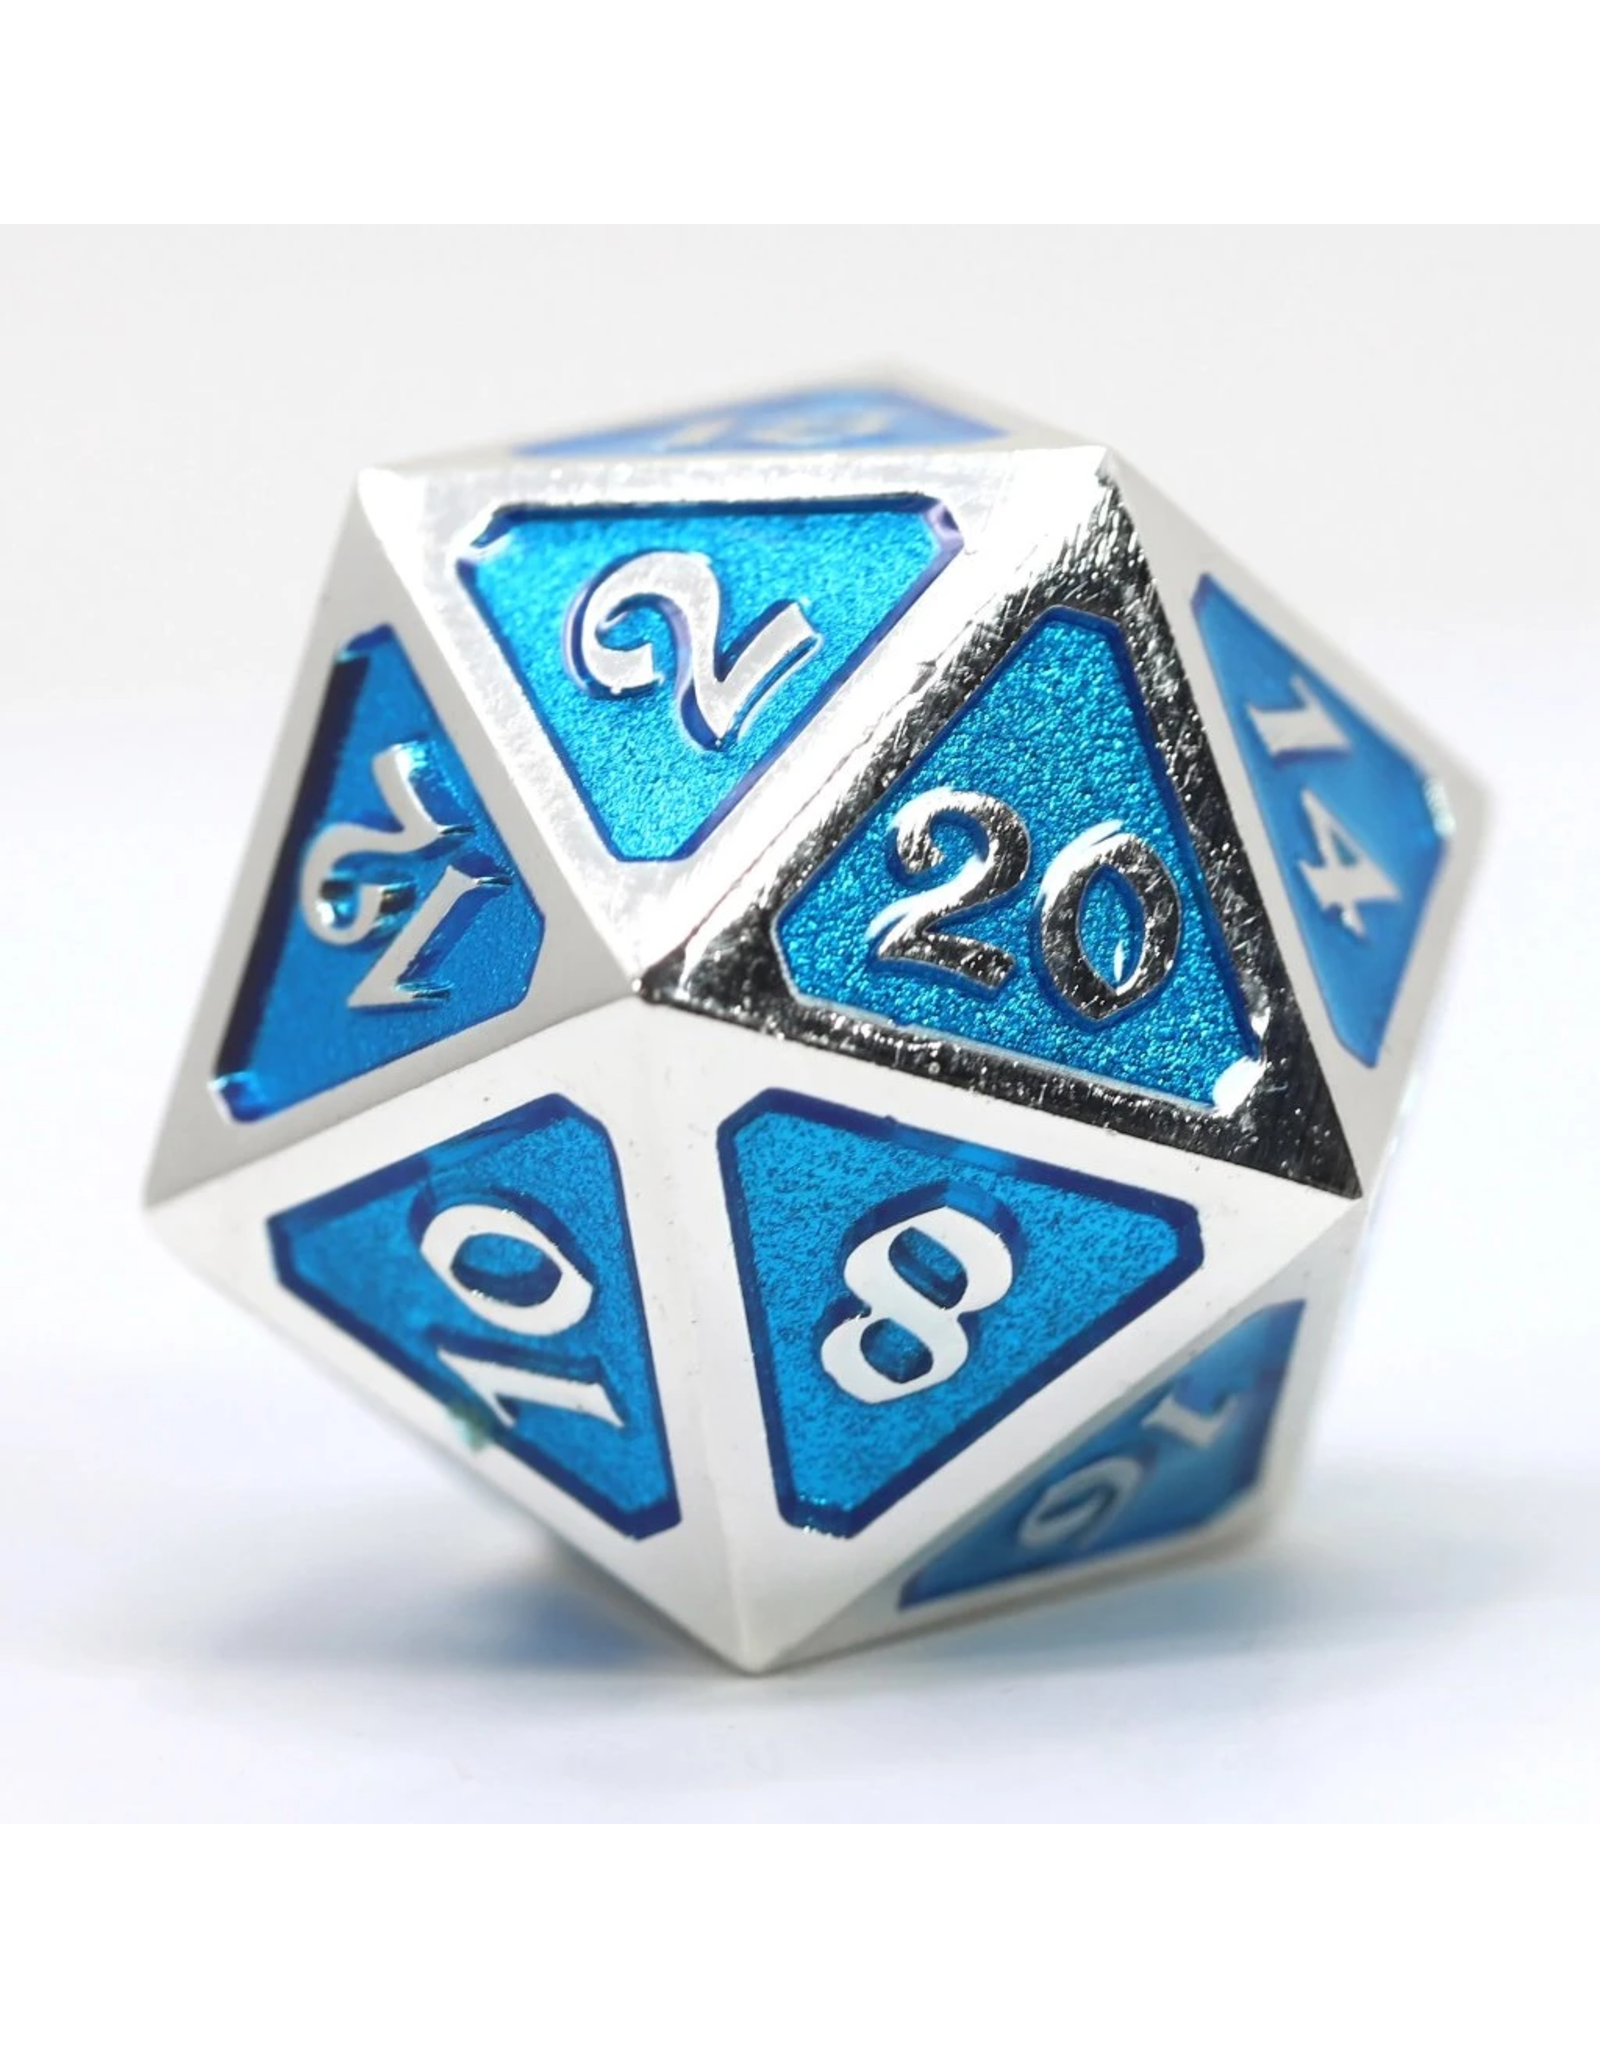 Die Hard Dice Die Hard Dice: Dire d20 Mythica Platinum Aquamarine